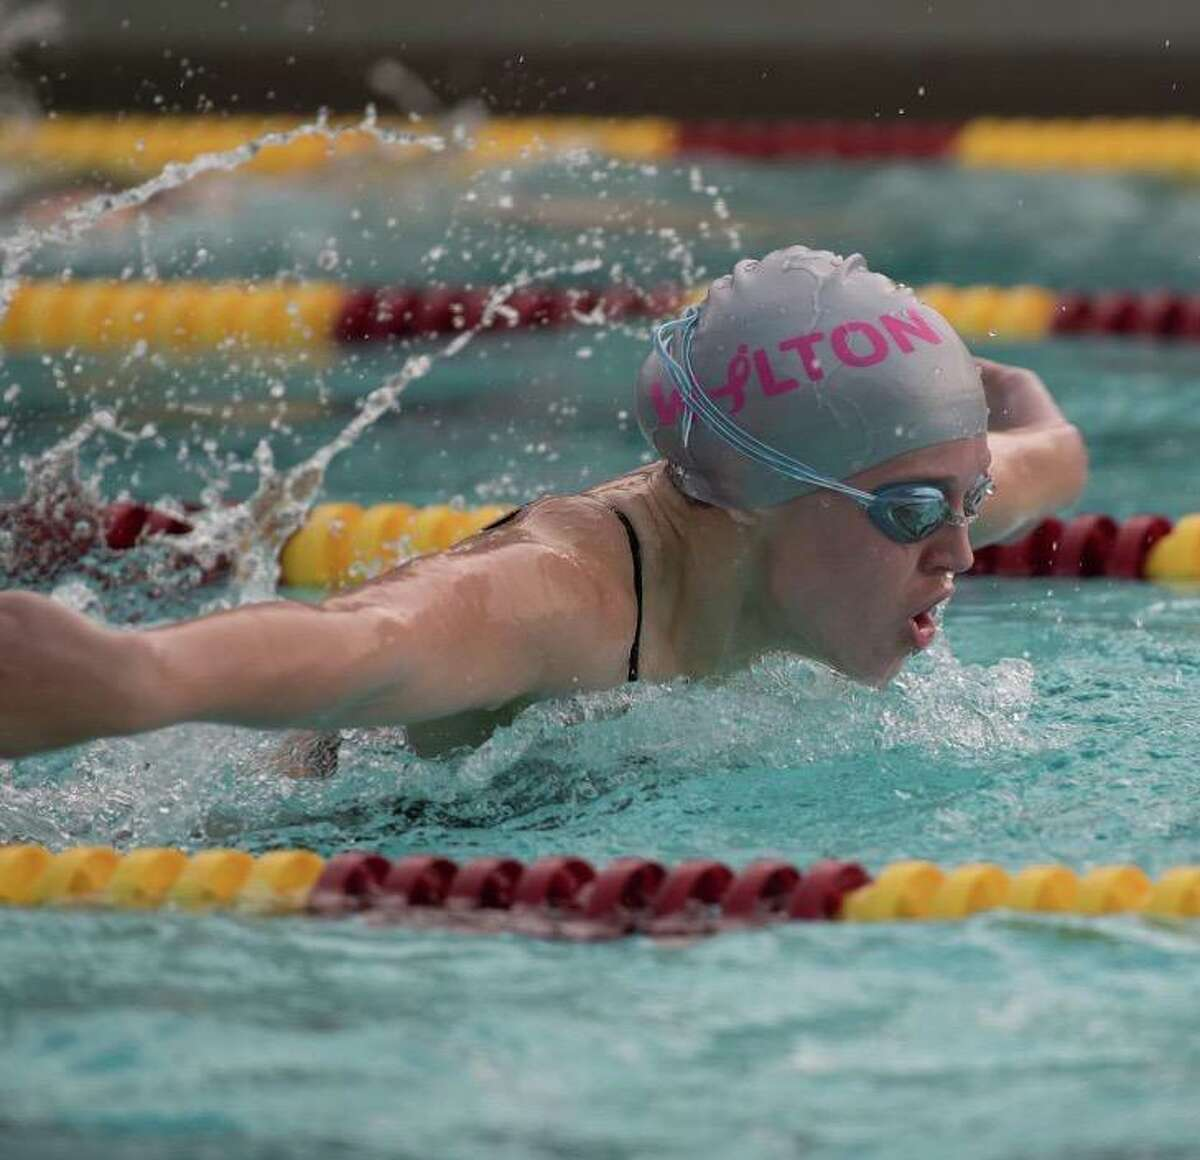 The Wilton Family YMCA's swim team, the Wahoos, will hold team evaluations Aug. 26-27, at the pool on Danbury Road.